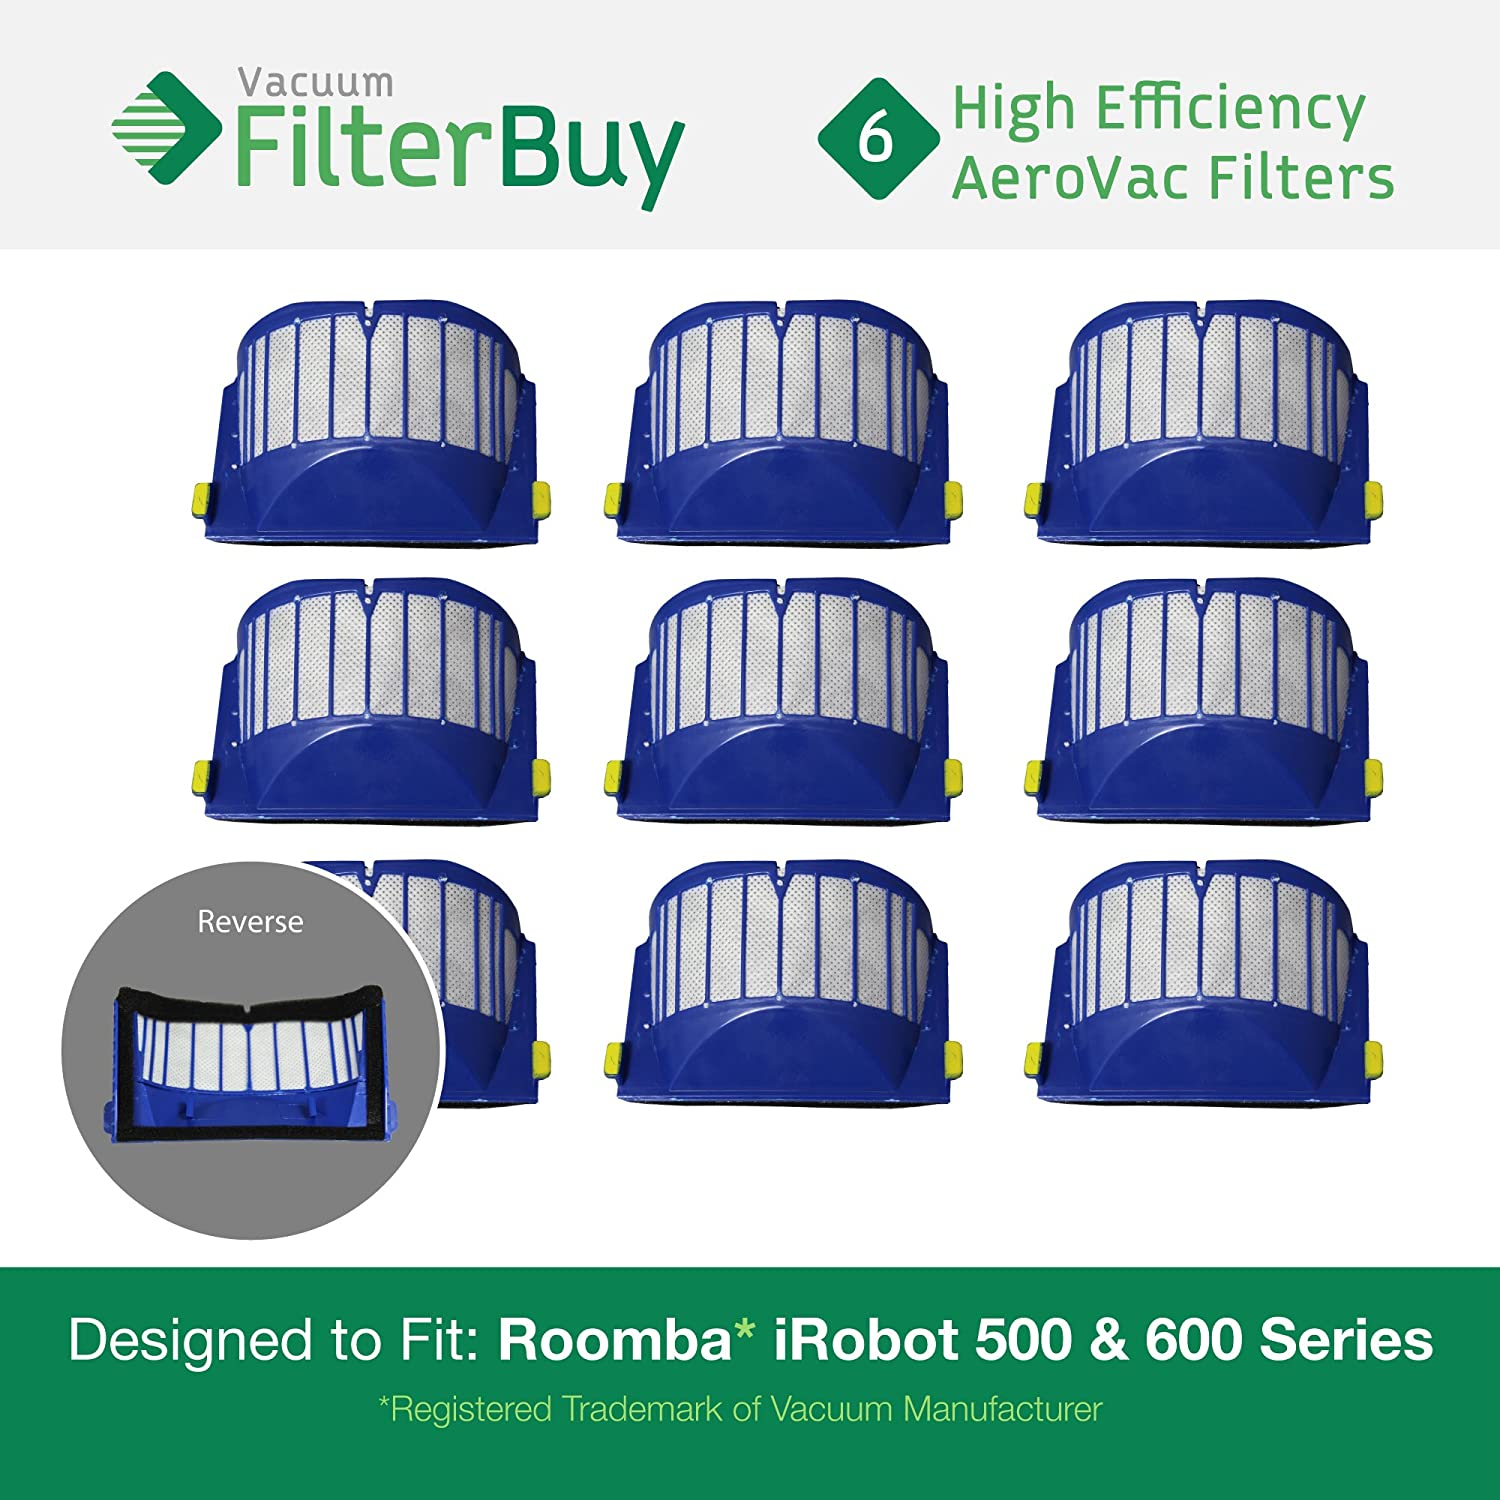 6 - iRobot Roomba 500 Series AeroVac Replacement Bin Filters. Designed by FilterBuy to fit iRobot Roomba 500 & Roomba 600 Series Vacuums LEPAC10764